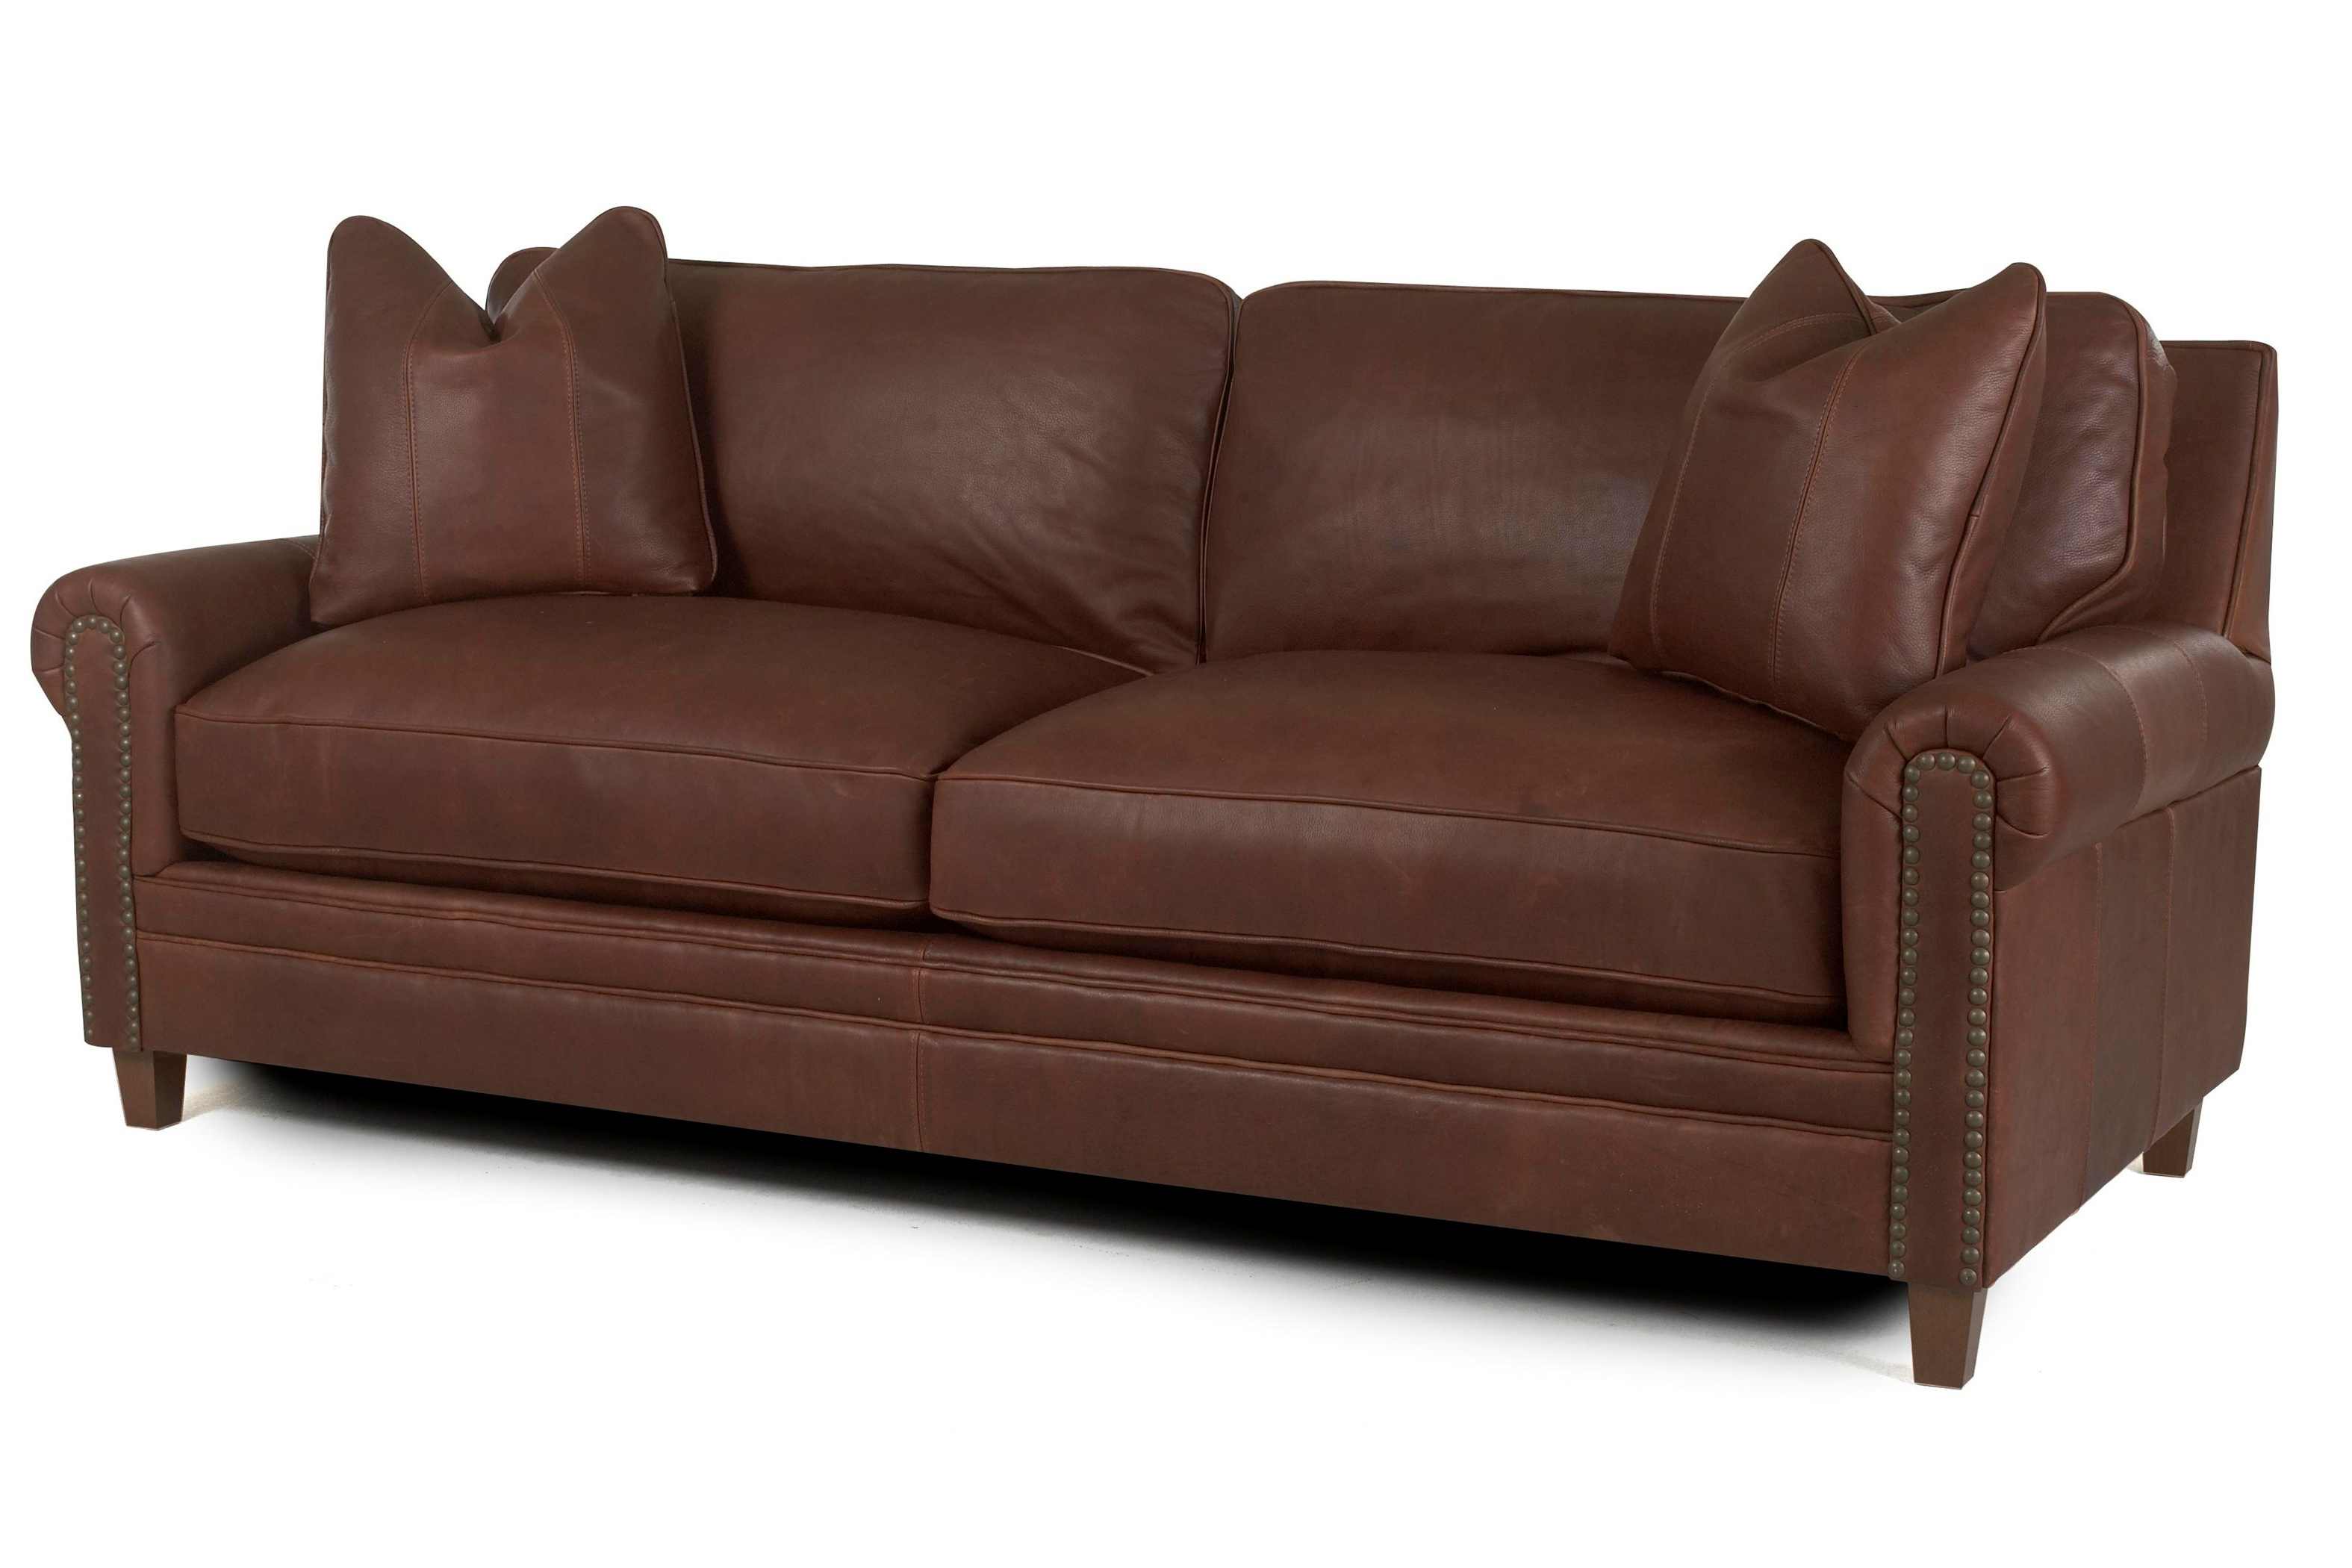 Furniture : The Best Sleeper Sectional Ikea Furnitures With Regard To Best And Newest Tuscaloosa Sectional Sofas (View 7 of 15)